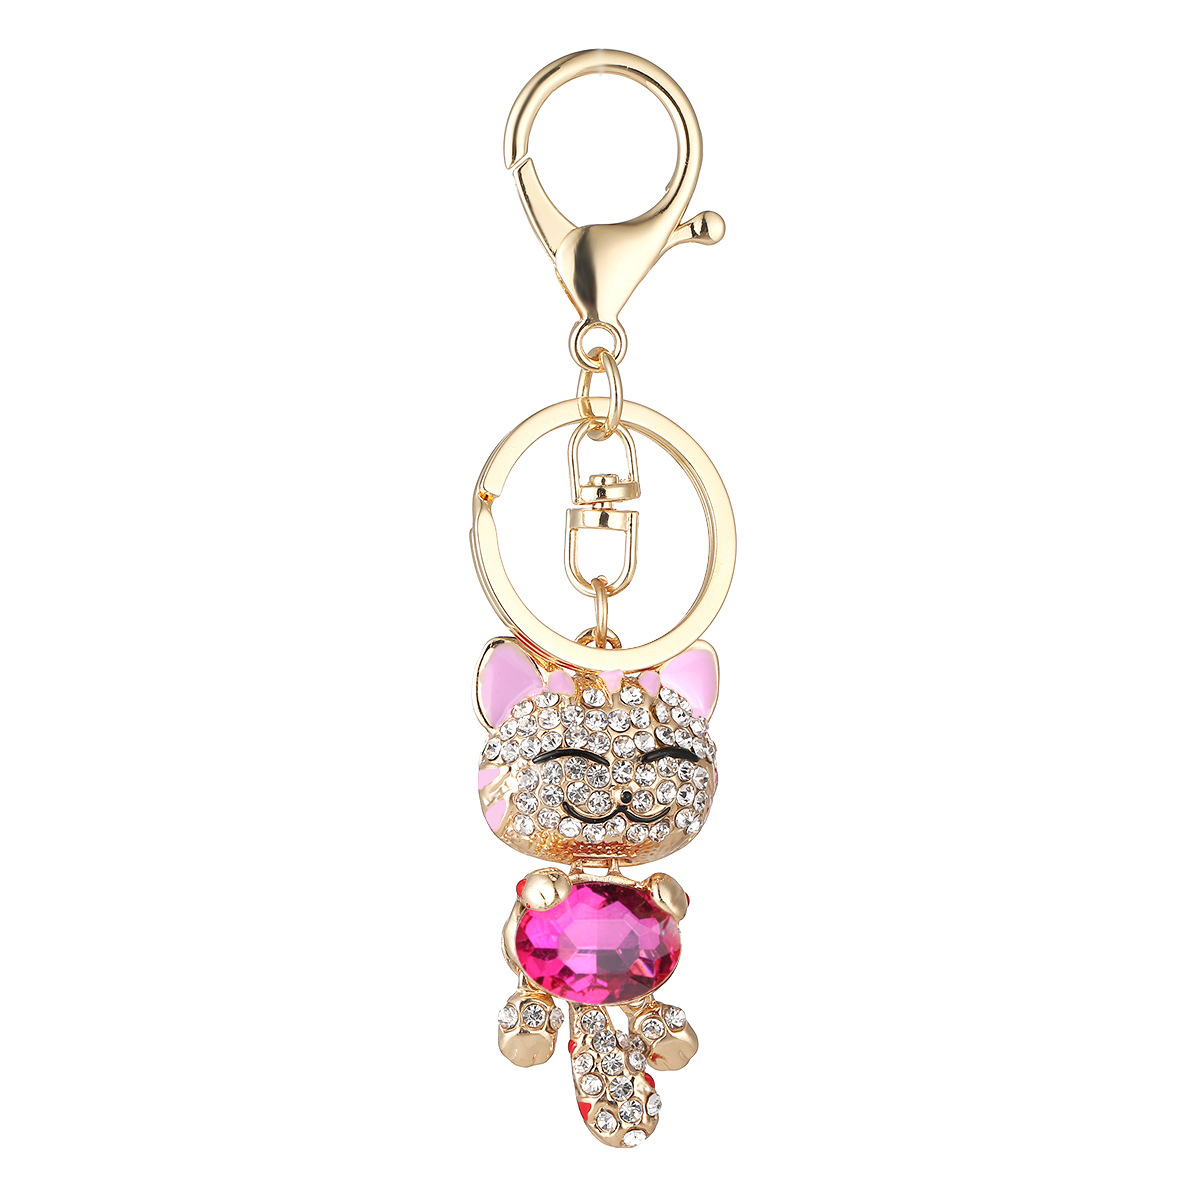 Lucky Smile Cat Crystal Rhinestone Keyrings Key Chains Holder Purse Bag For Car christmas Gift Keychains Jewelry llaveros lucky bag gift box for blackview ultra